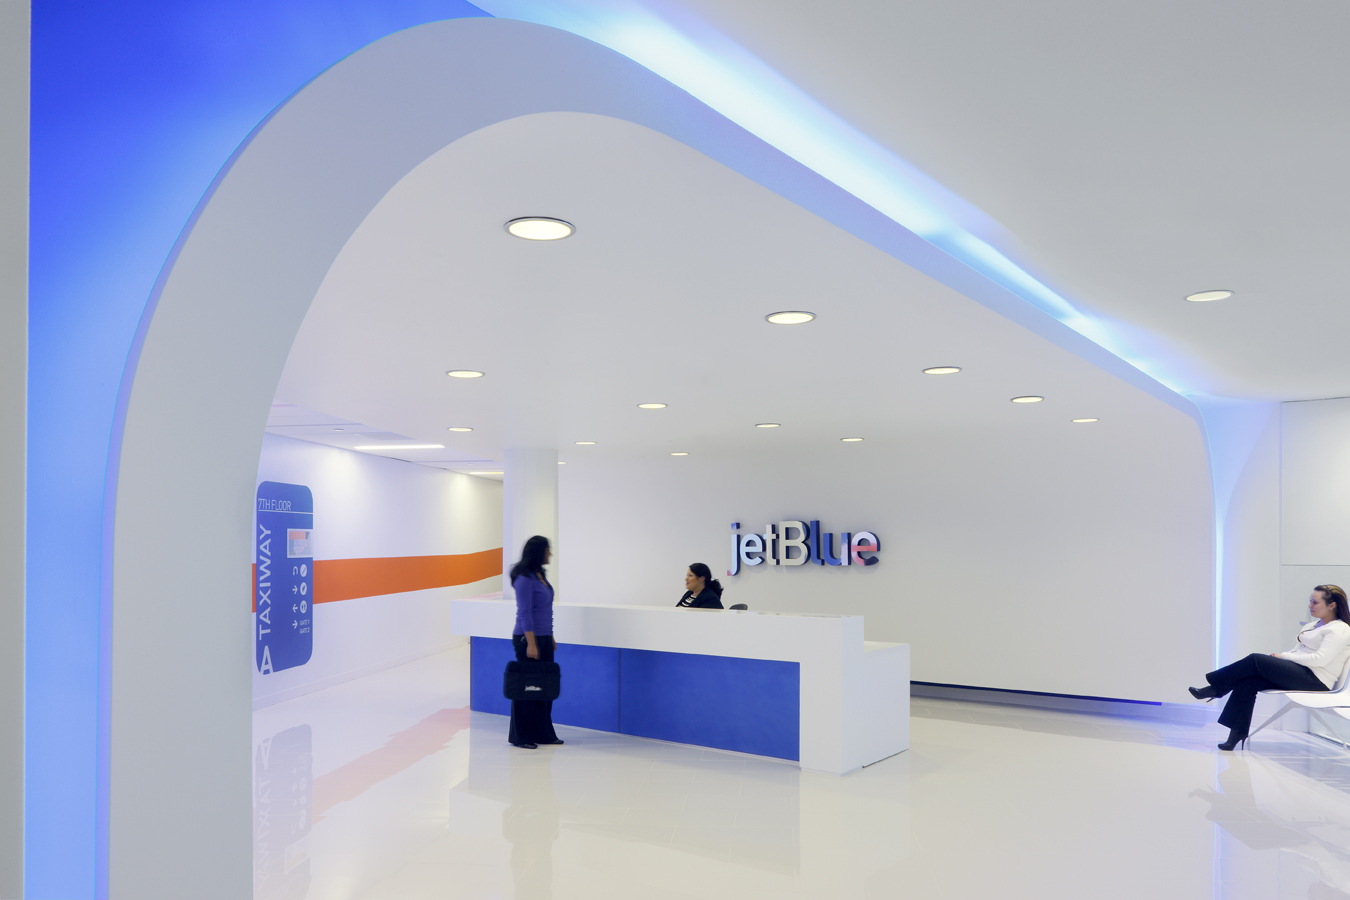 jetBlue offices, NY